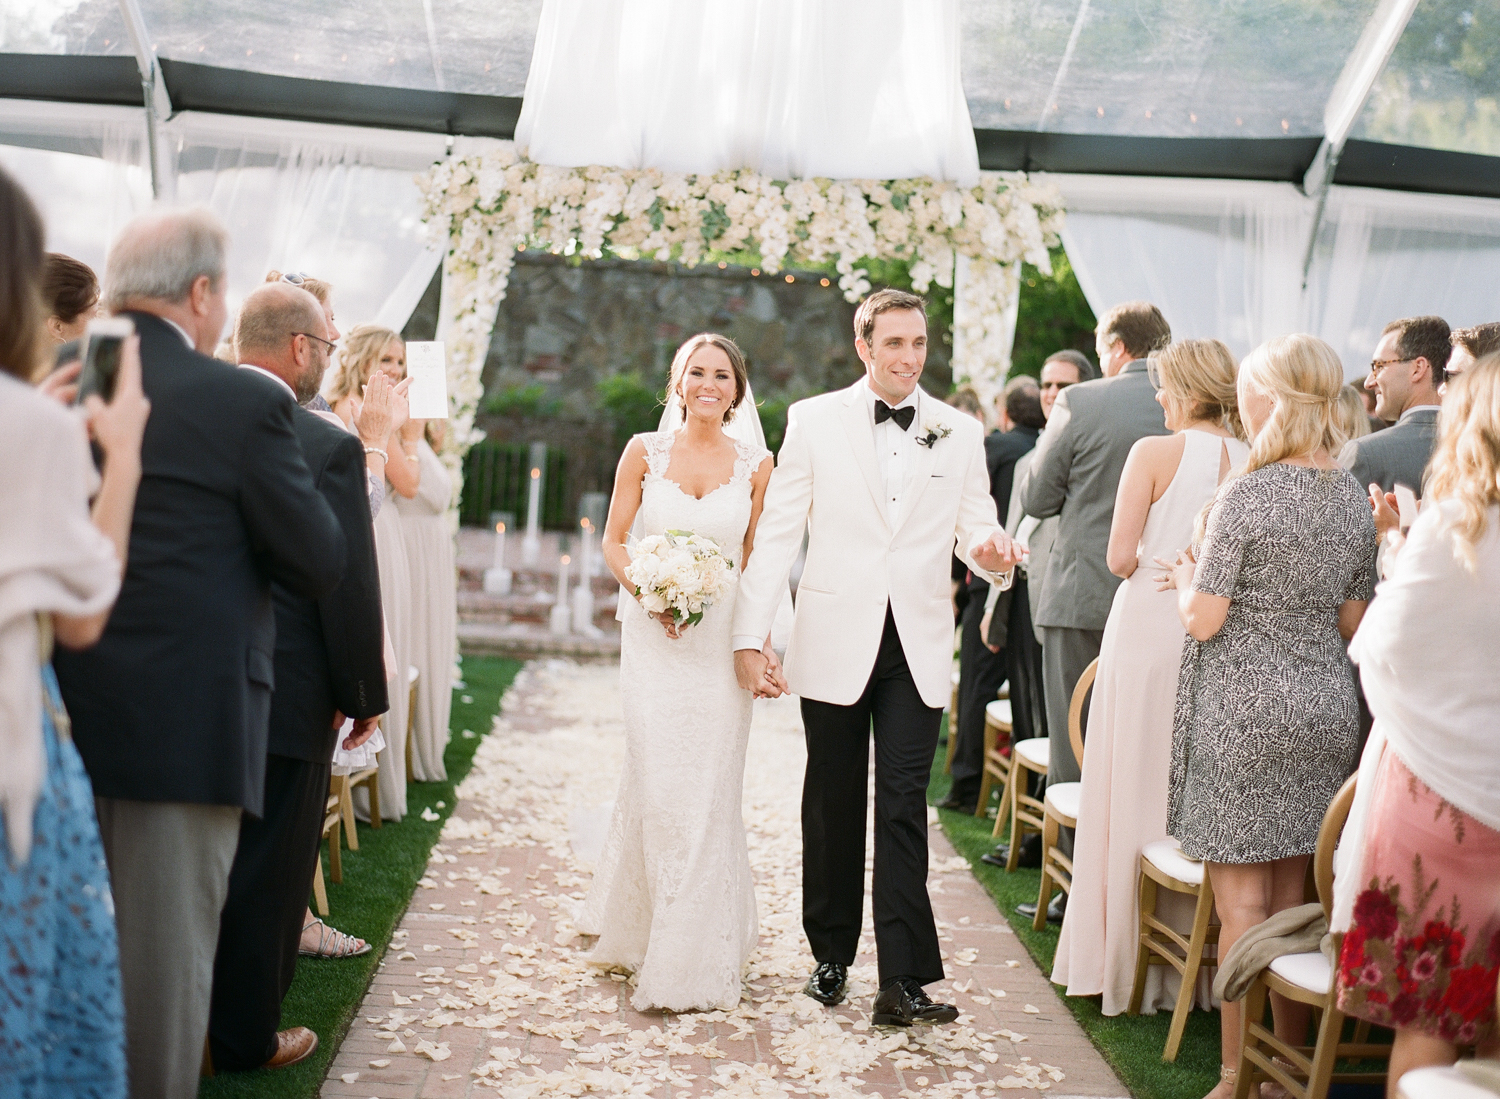 Bride and groom walk up the aisle, just married after ceremony at Vintage Estates; Sylvie Gil Photography